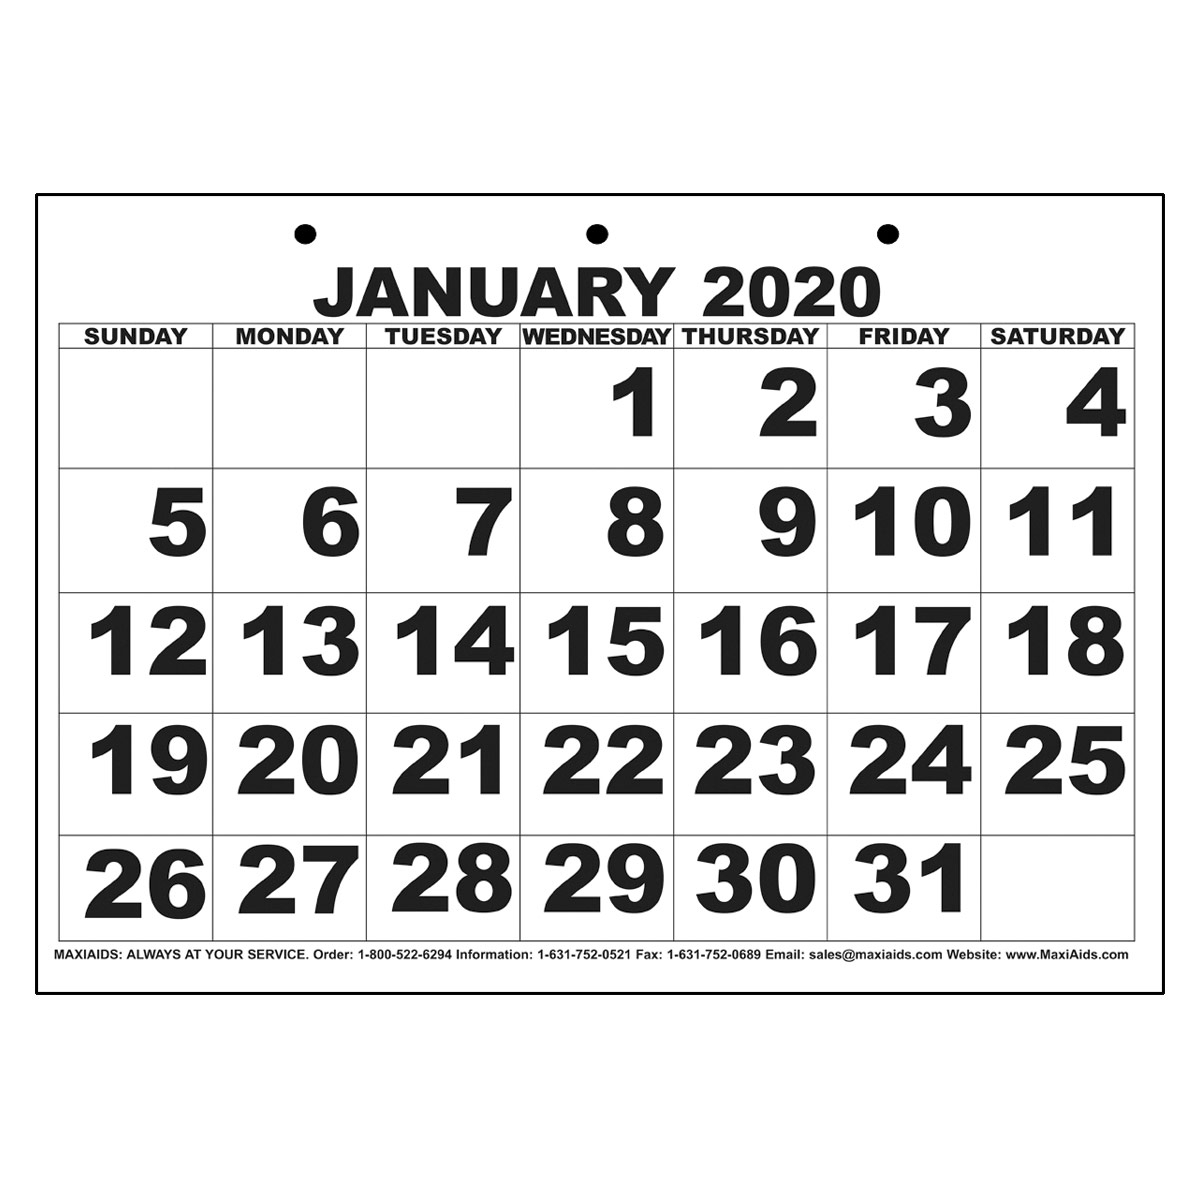 Low Vision Print Calendar  2020 pertaining to Free Printable Large Print Calendars For The Visually Impaired